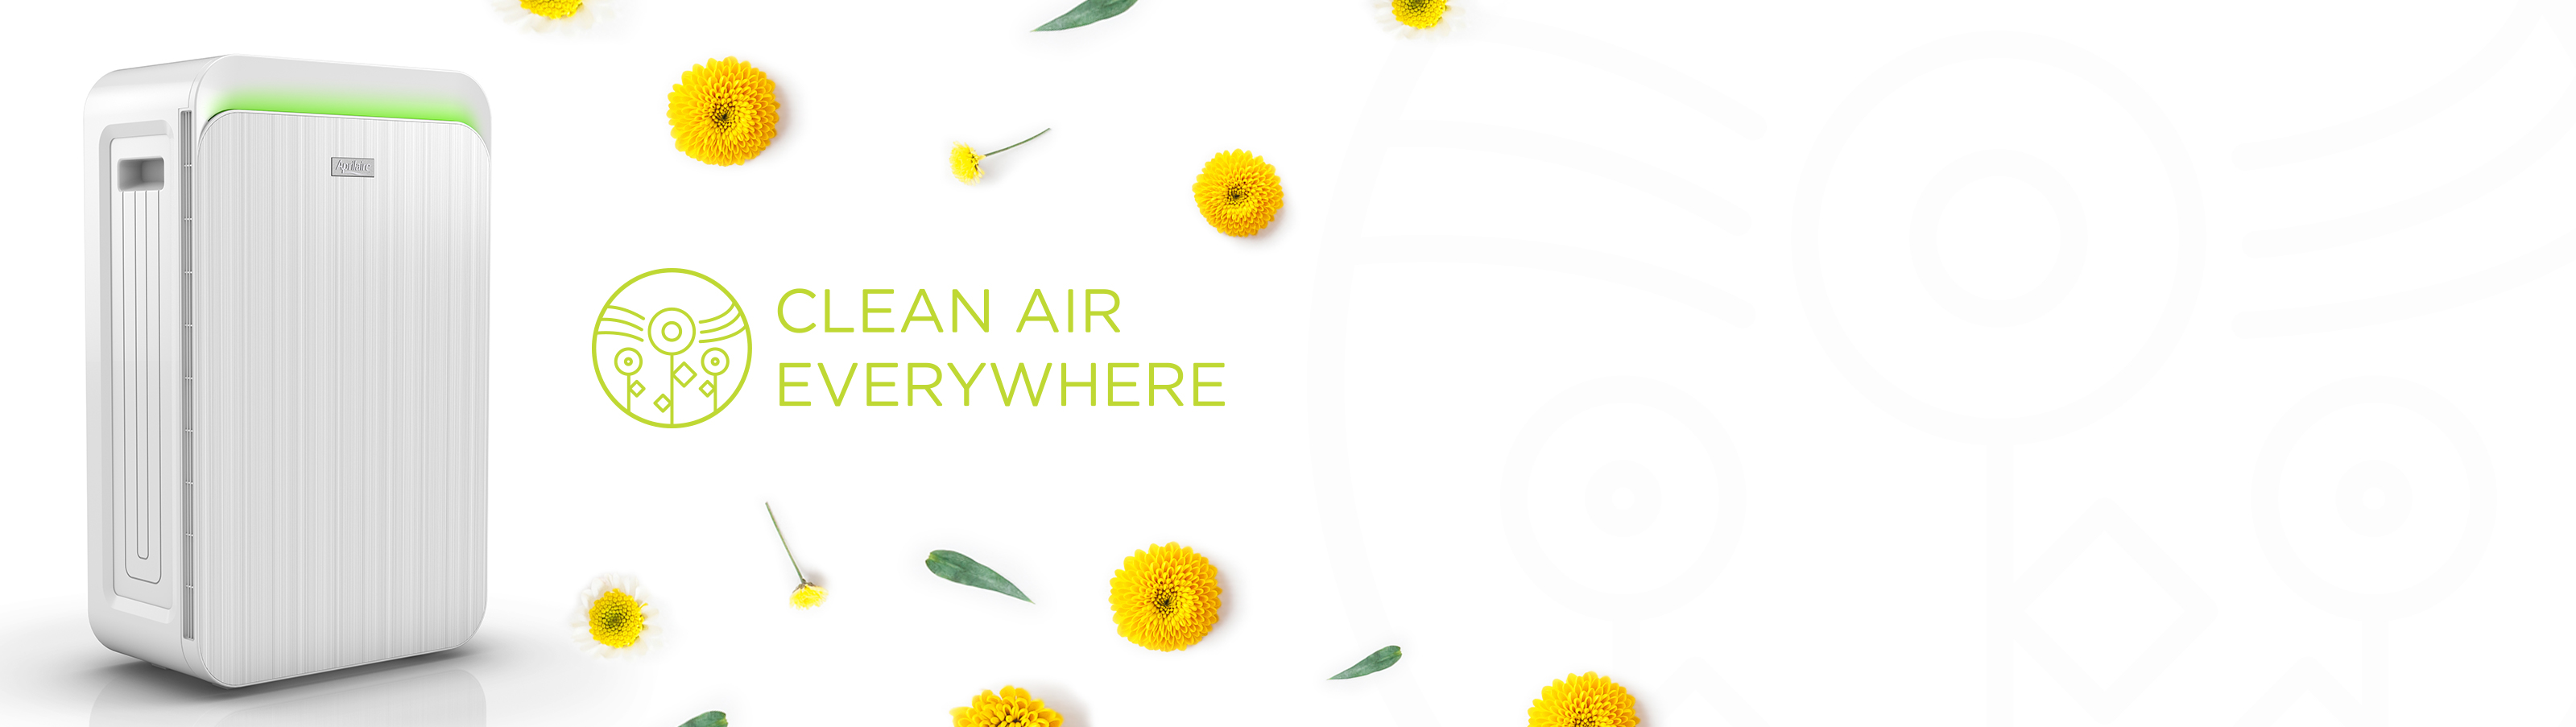 Aprilaire Room Air Purifier